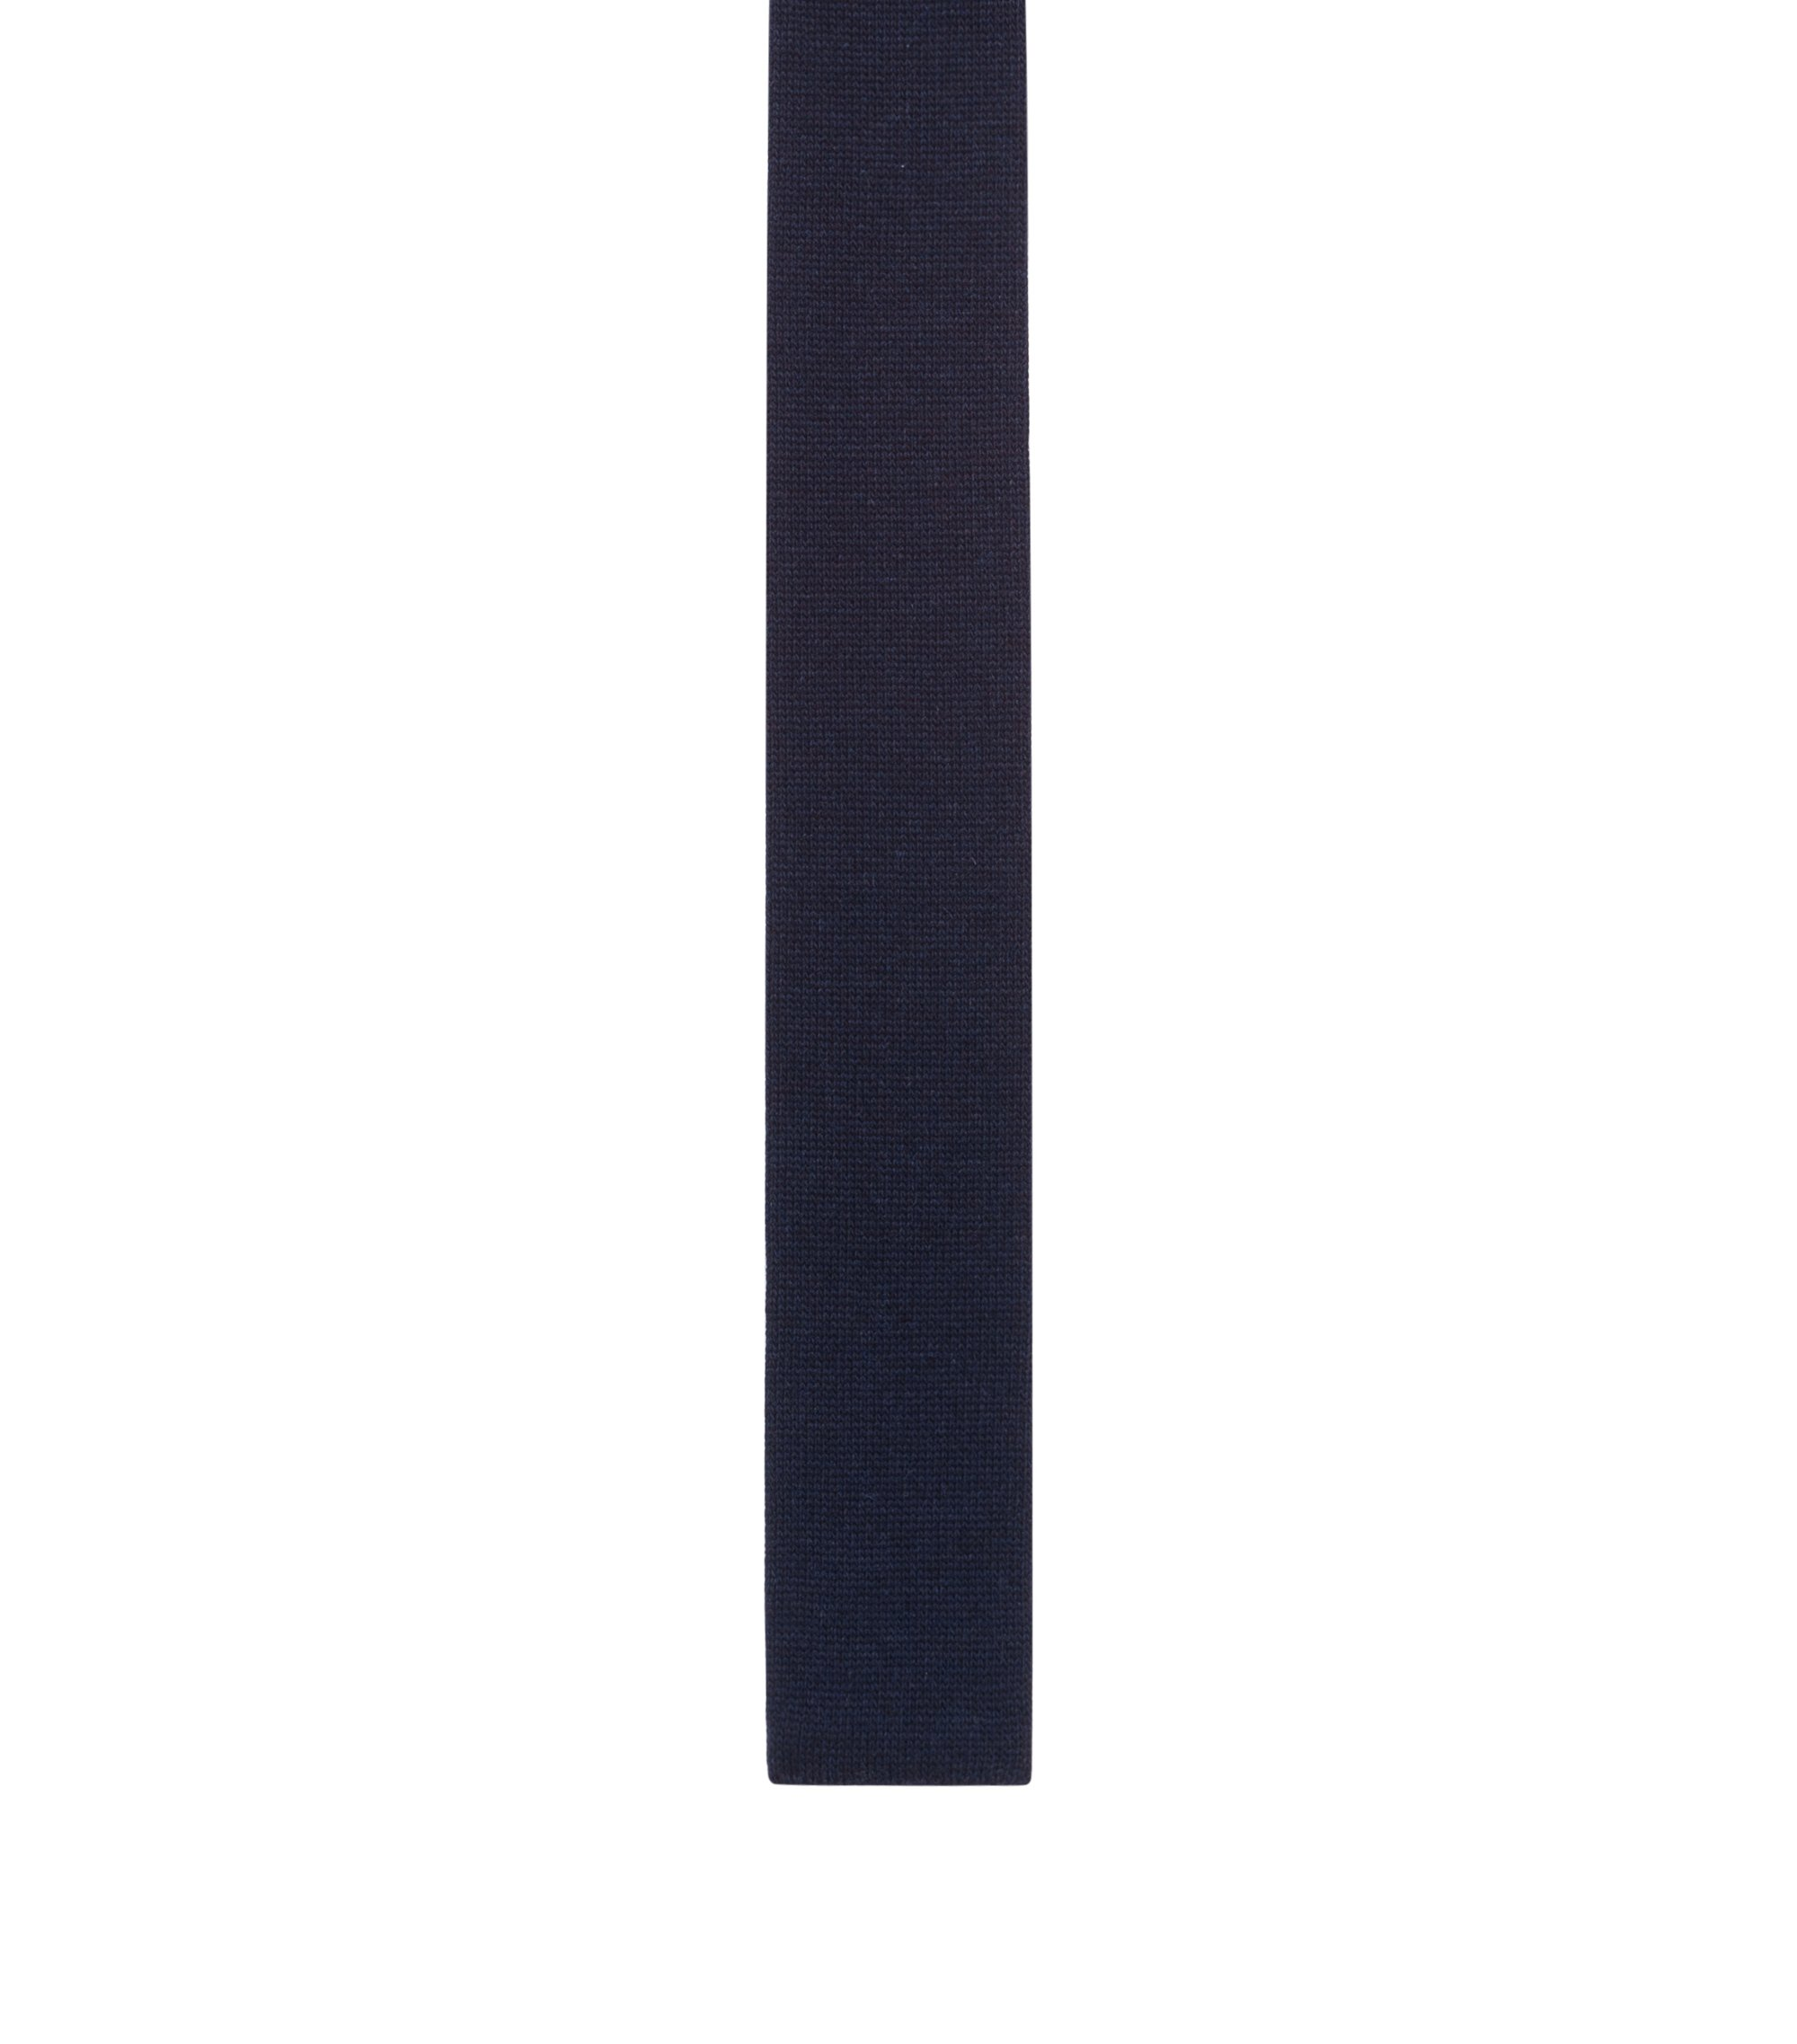 Knitted wool-blend tie with squared end, Dark Blue